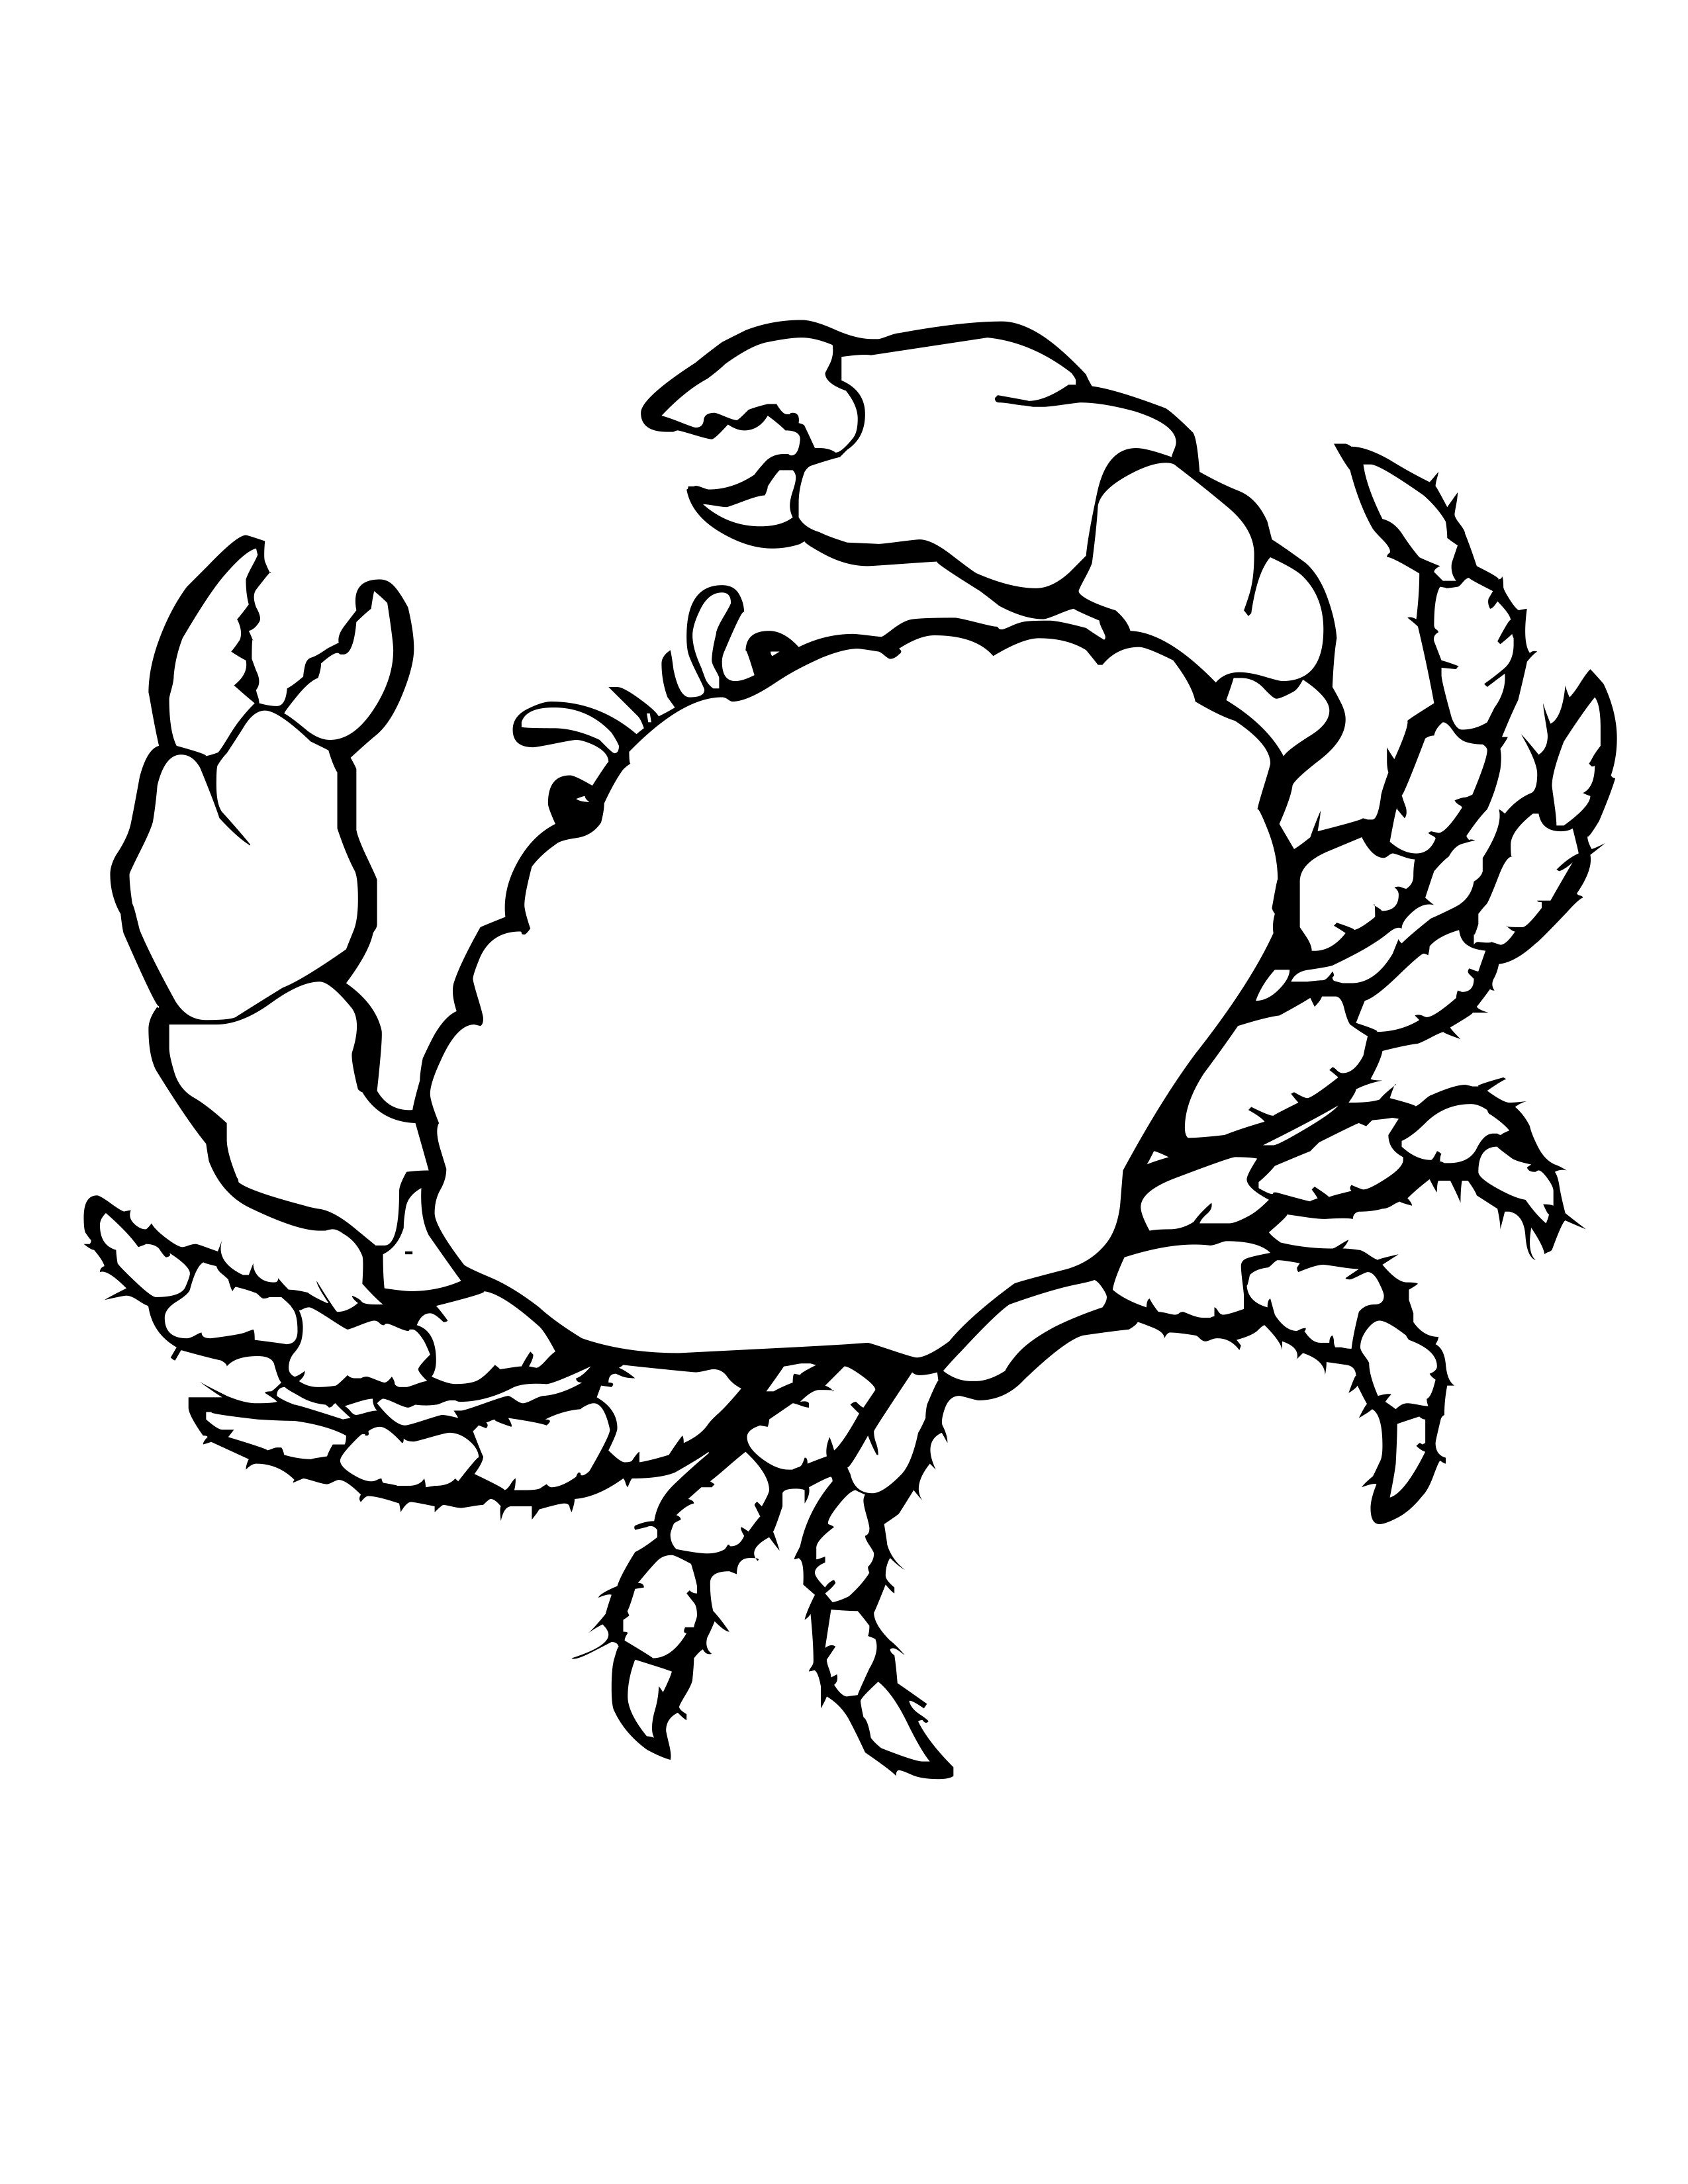 crabs coloring pages free printable crab coloring pages for kids pages crabs coloring